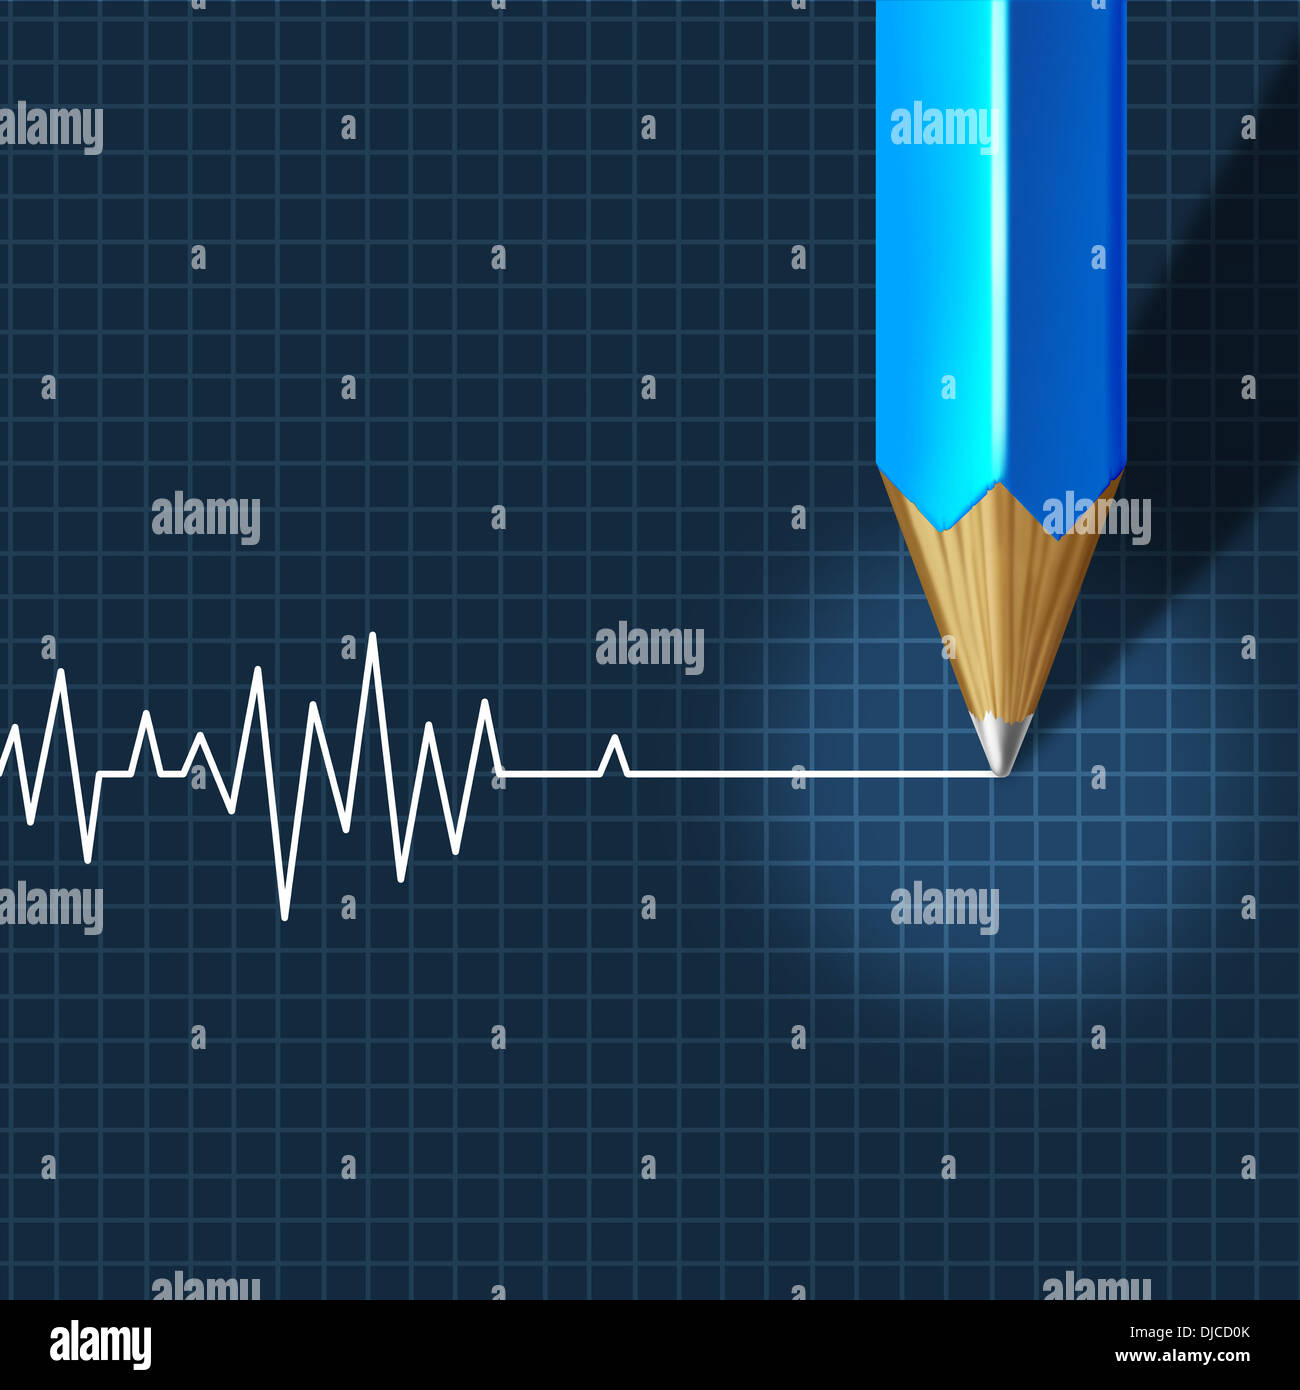 Euthanasia Medical Intervention as a medical health care concept of doctor social dilemma in end of life termination as a pencil drawing an ecg or ekg flatline on a monitor graph. - Stock Image